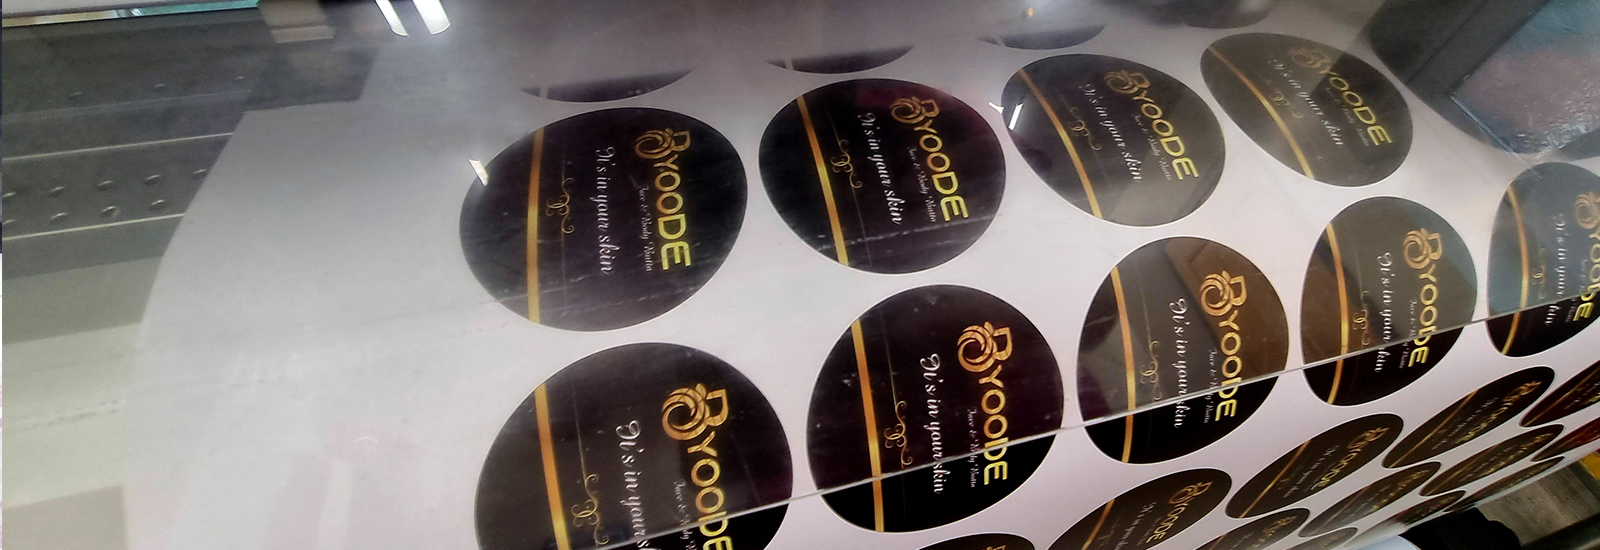 Supplying Stickers at affordable prices